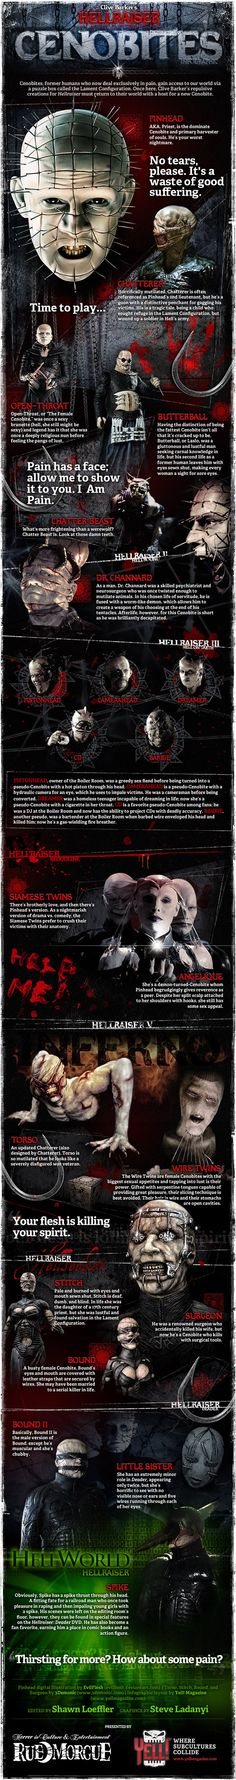 Hellraiser (2012): Cenobites A-Gore.  Infographic created by Yell! Magazine.